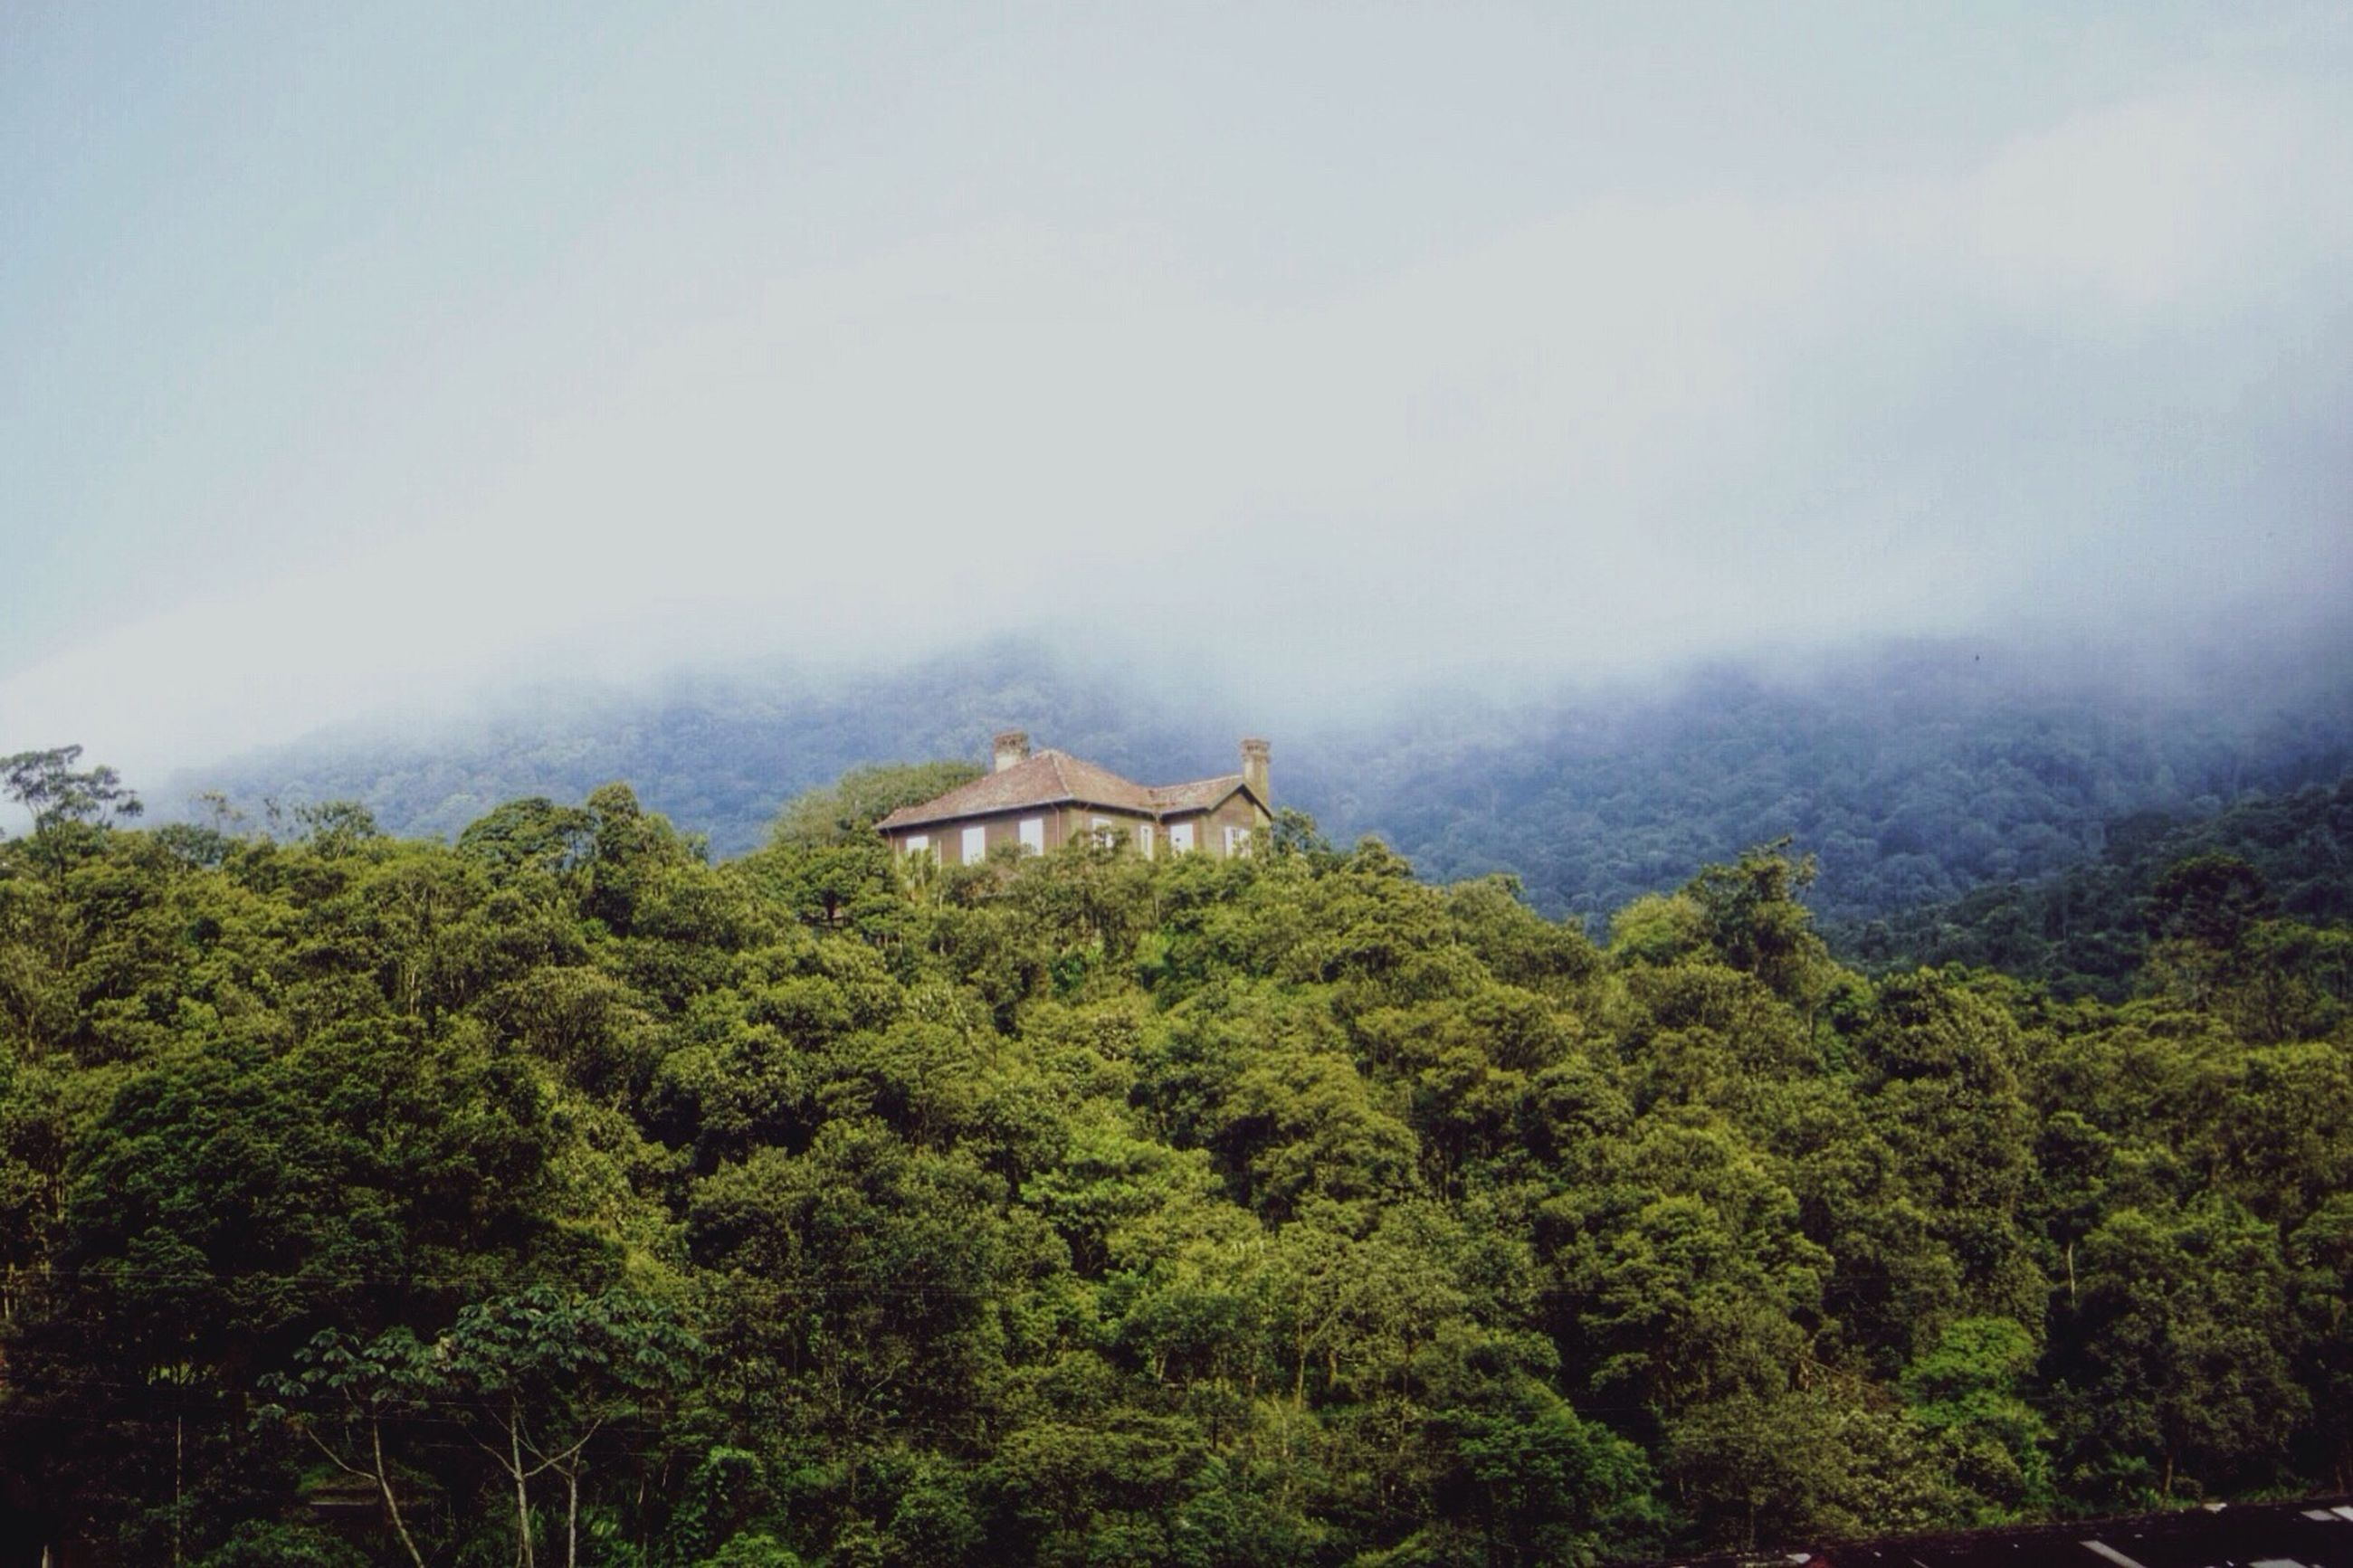 tree, green color, sky, growth, fog, nature, tranquility, beauty in nature, built structure, lush foliage, tranquil scene, scenics, architecture, weather, building exterior, house, mountain, forest, day, non-urban scene